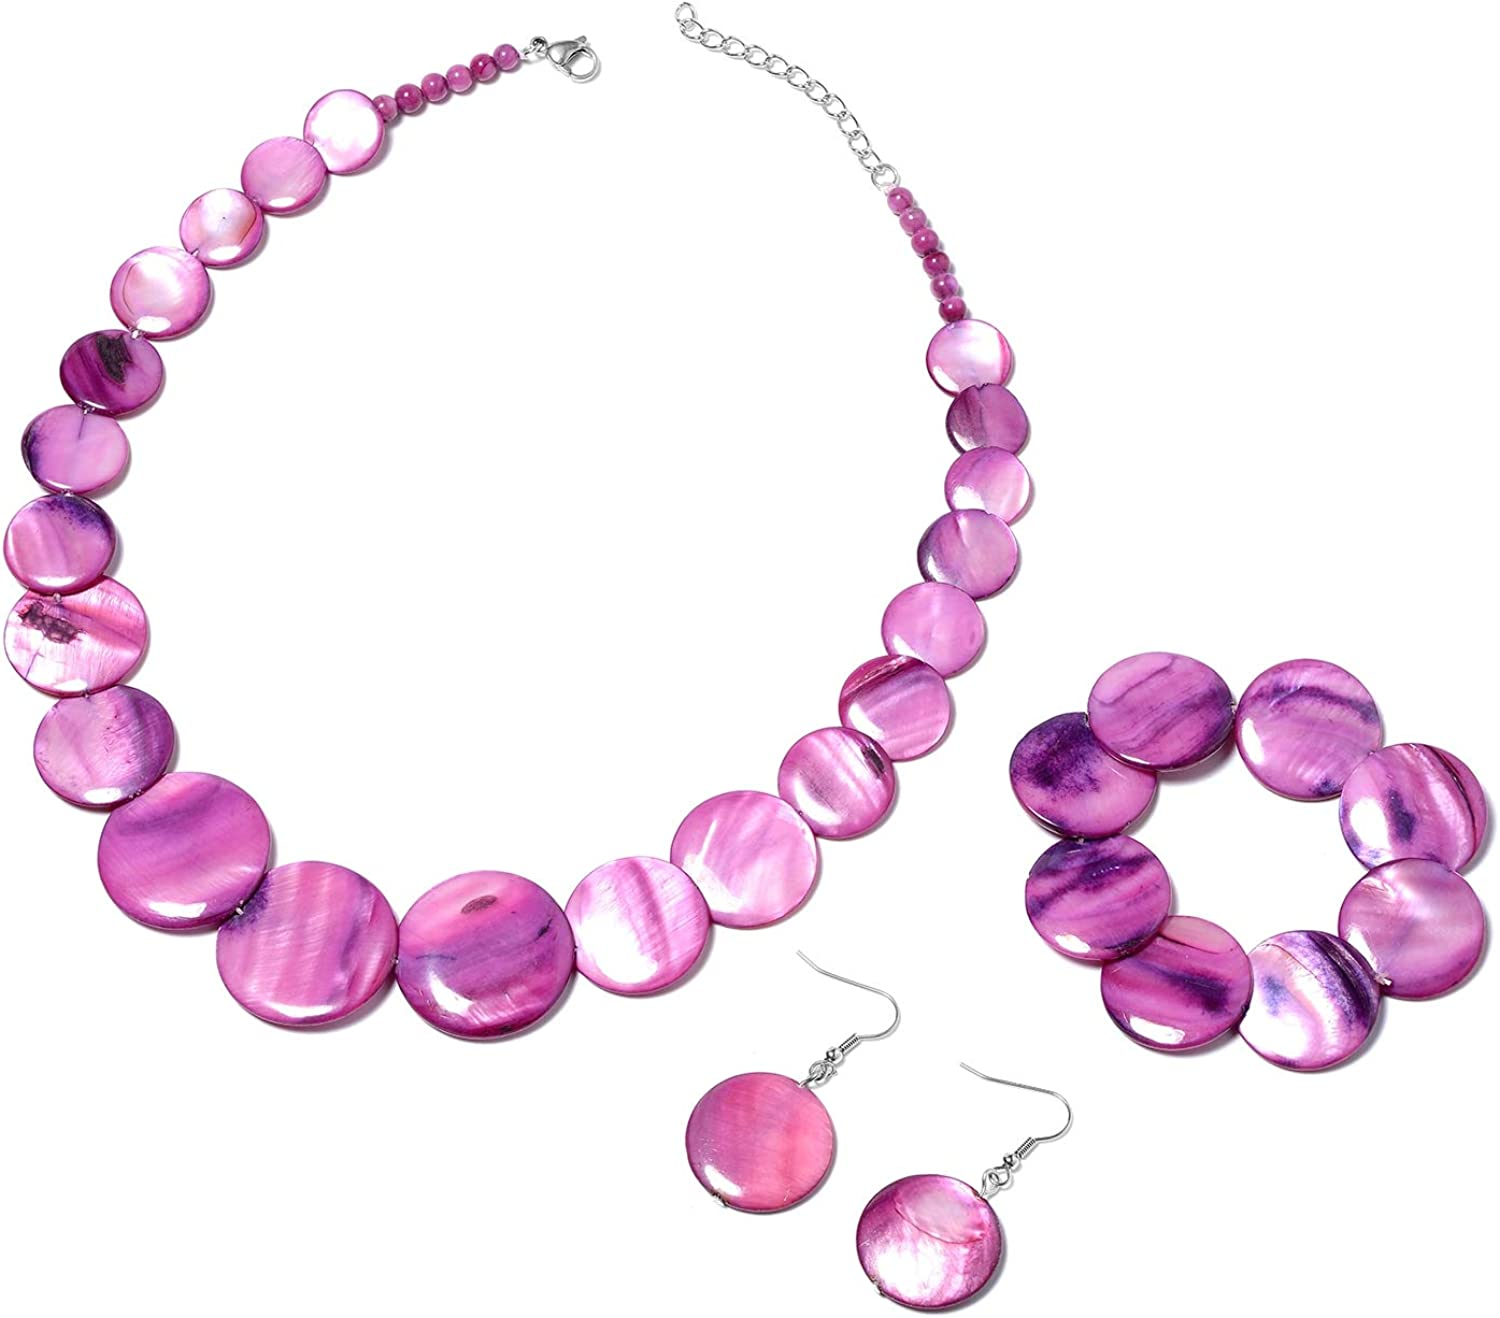 Shop LC Stainless Steel Purple Shell Bracelet Stretchable Dangle Drop Earrings Necklace Costume Stylish Fashion Jewelry Sets Unique Gifts for Women 20